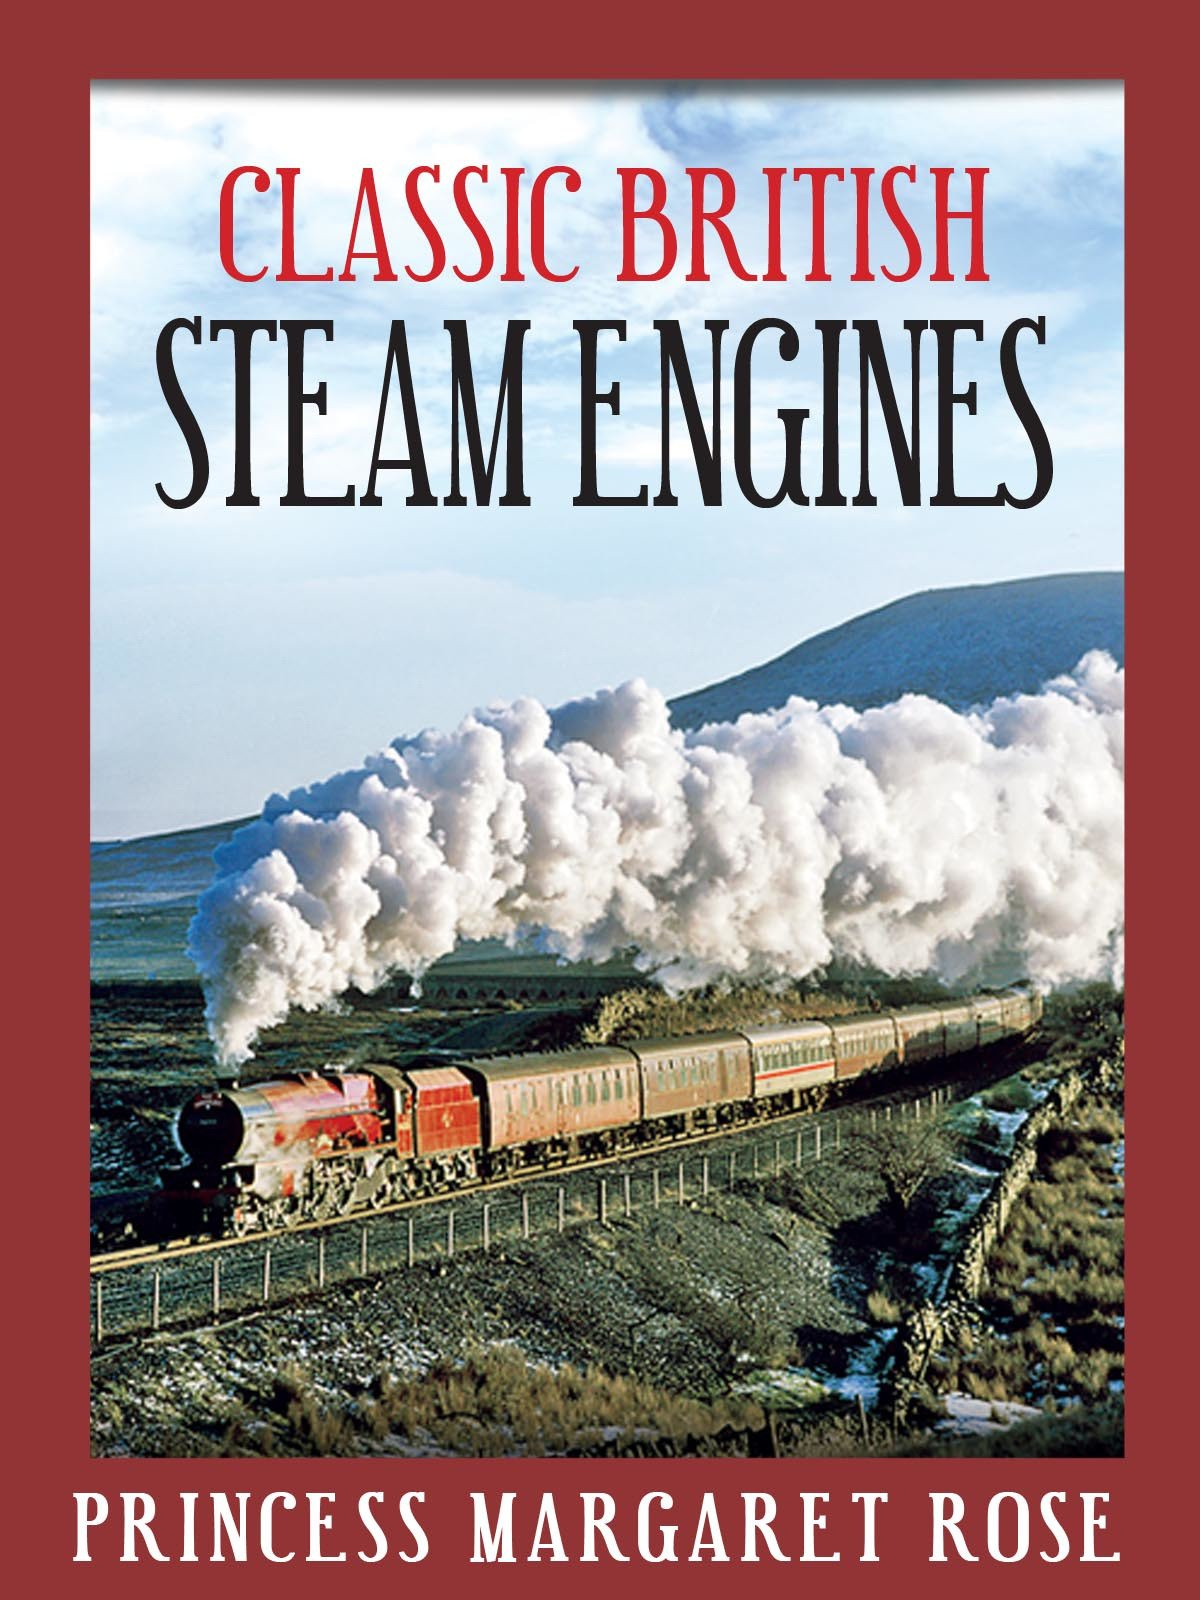 Classic British Steam Engines: Princess Margaret Rose